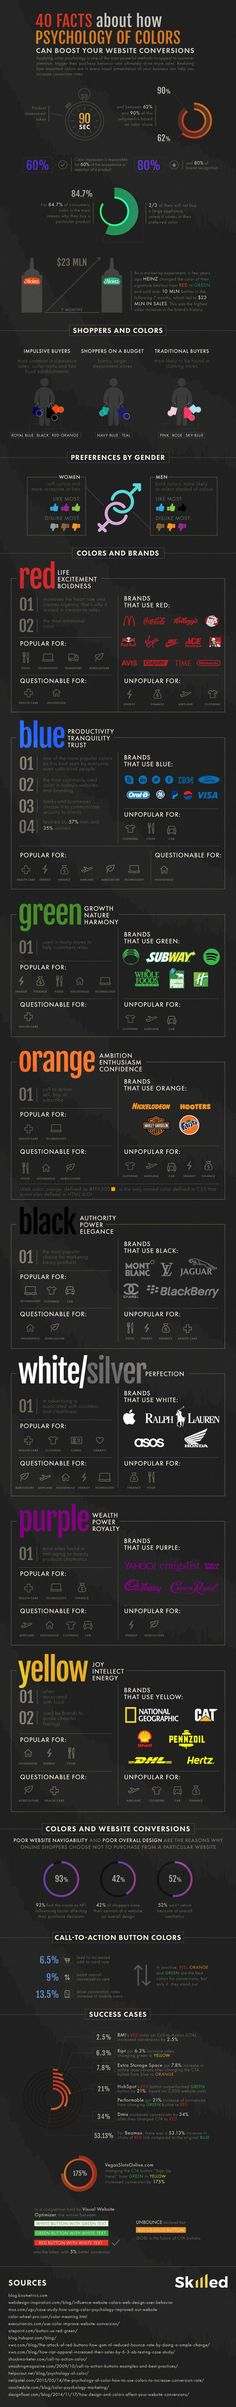 Using Color Psychology to Boost Sales & Website Conversions | Infographic